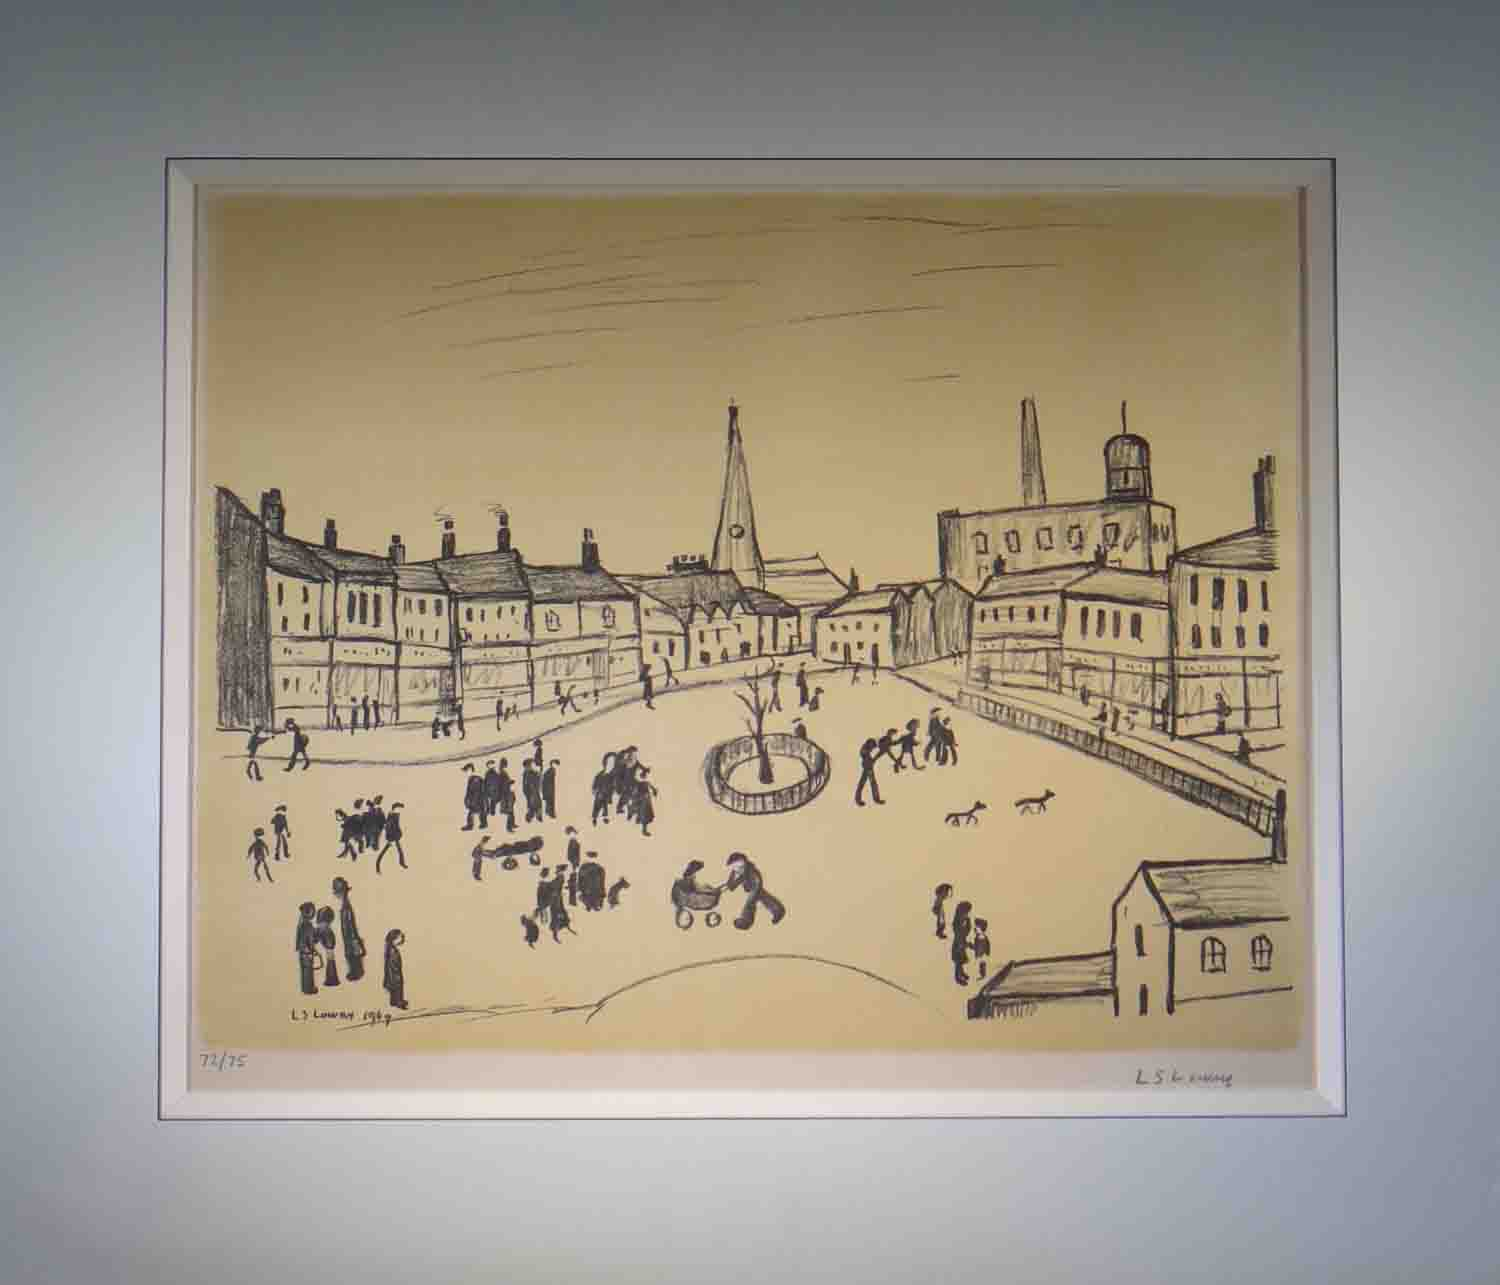 lowry, Tree in a square, signed print lslowry